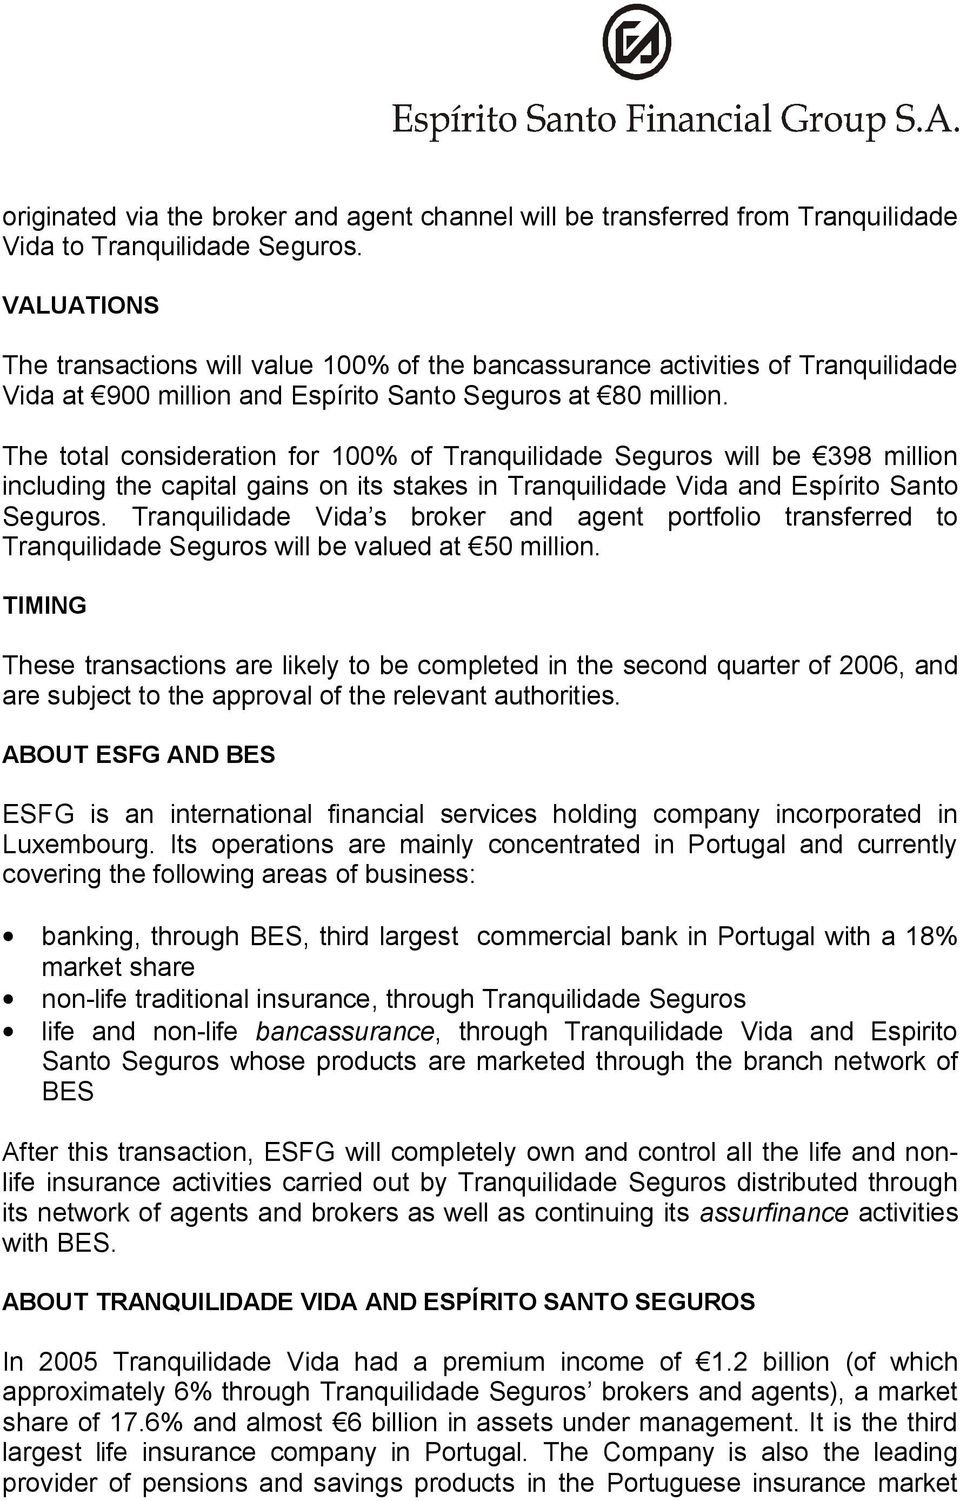 The total consideration for 100% of Tranquilidade Seguros will be 398 million including the capital gains on its stakes in Tranquilidade Vida and Espírito Santo Seguros.